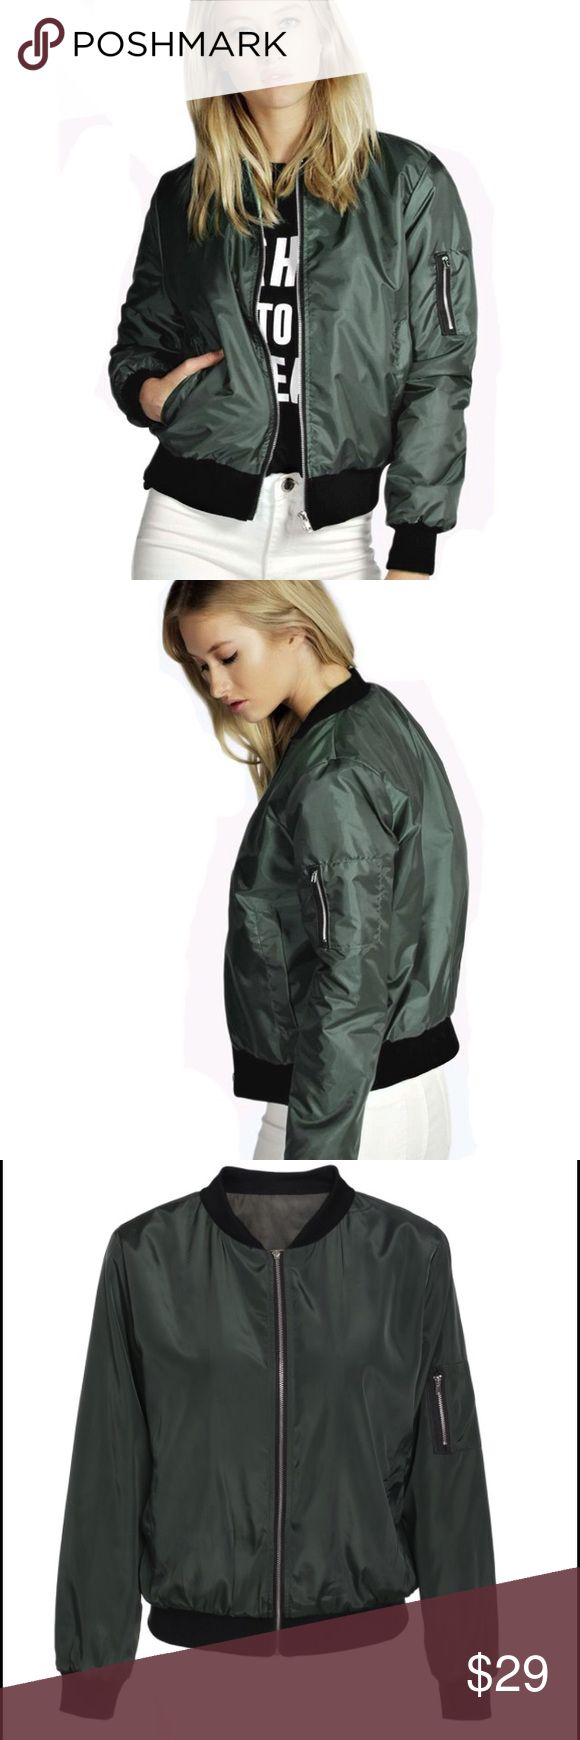 Army Green Lightweight Bomber Jacket Brand new! Lightweight, perfect for summer or for autumn with your favorite hoodie underneath. Ships same day if ordered by 10:00 CST. Combine 3 items for 15% discount. Jackets & Coats